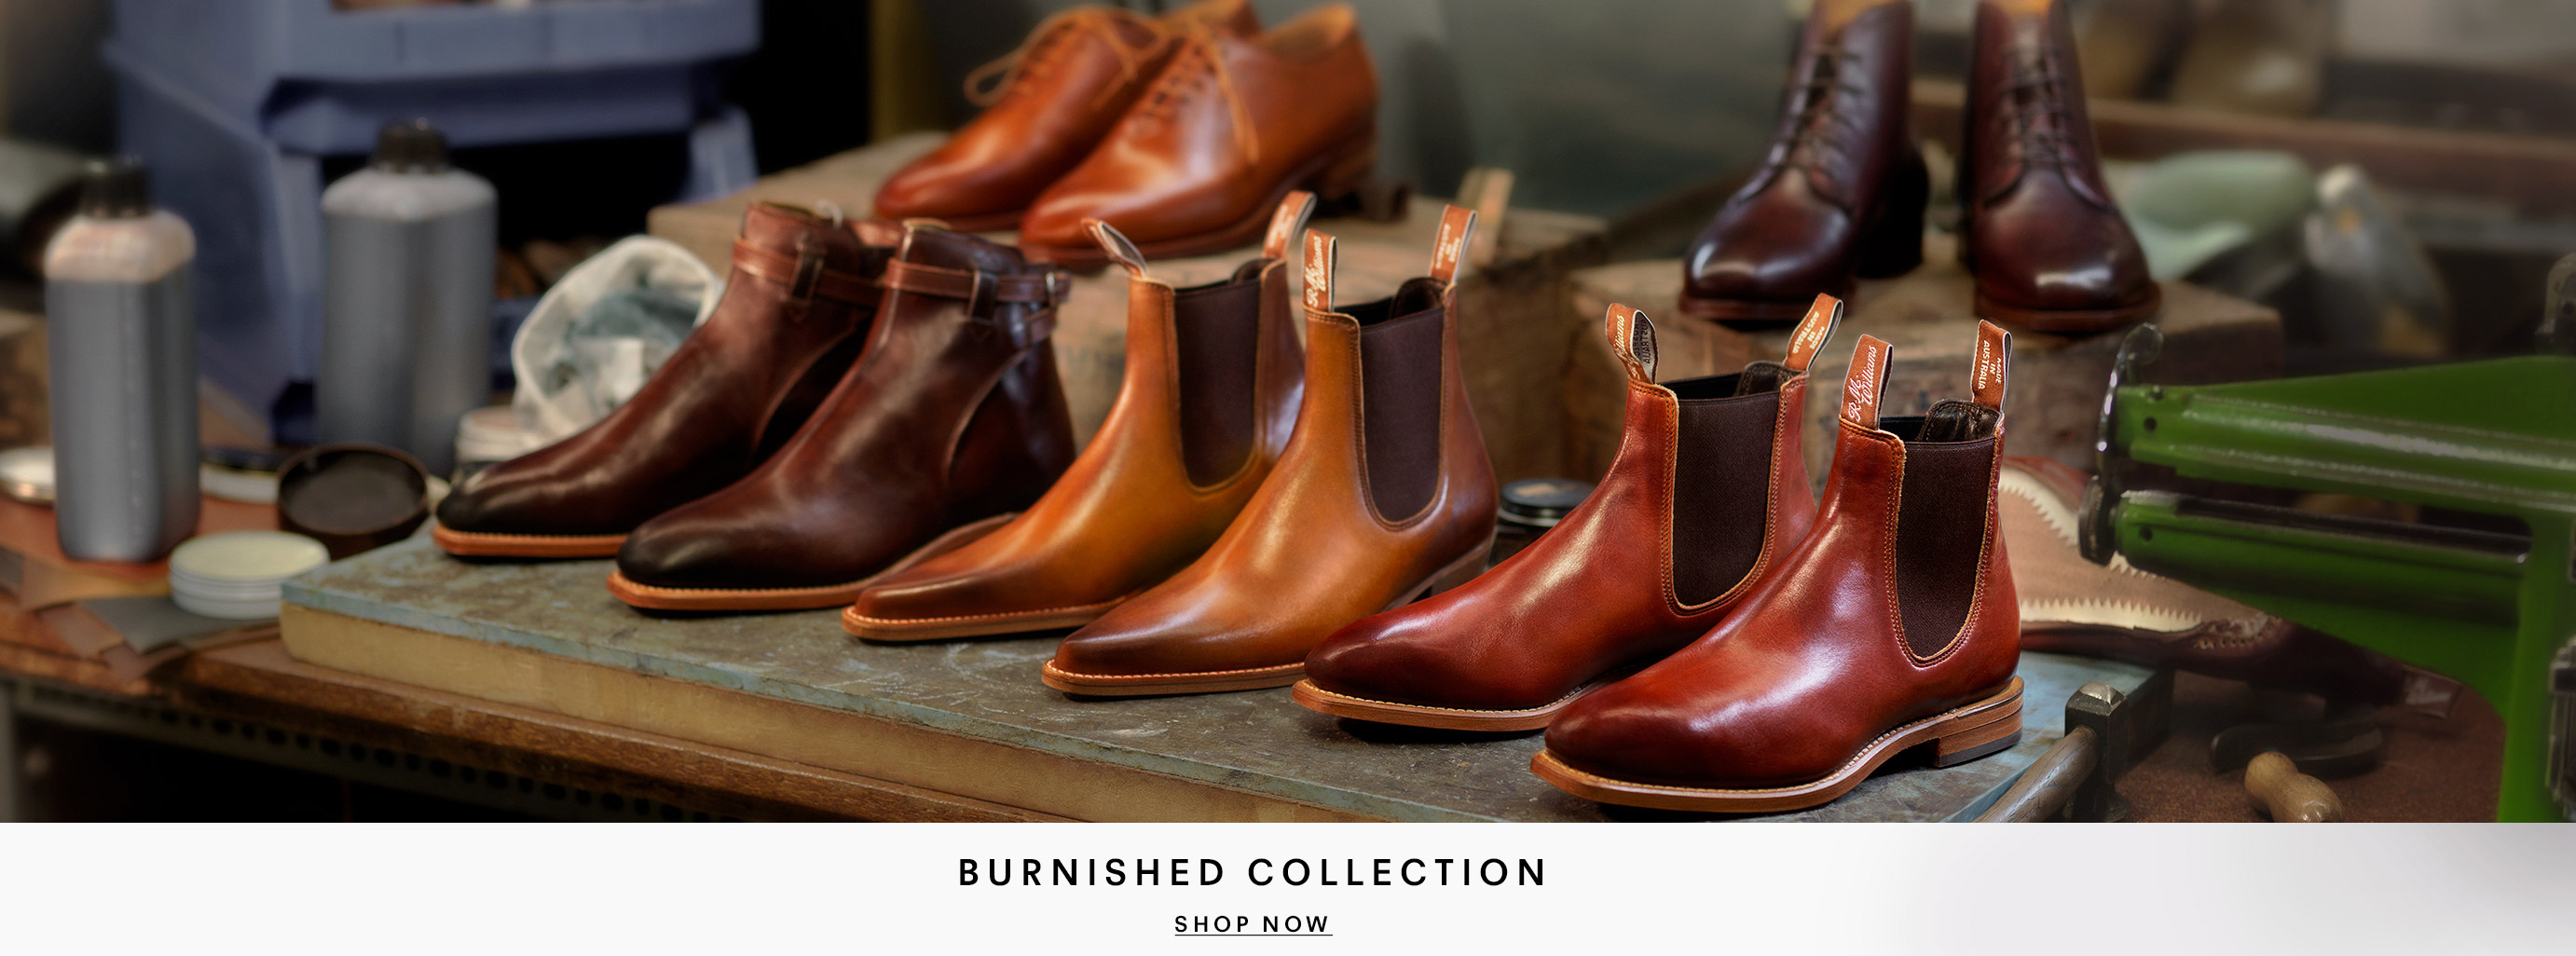 Burnished Collection